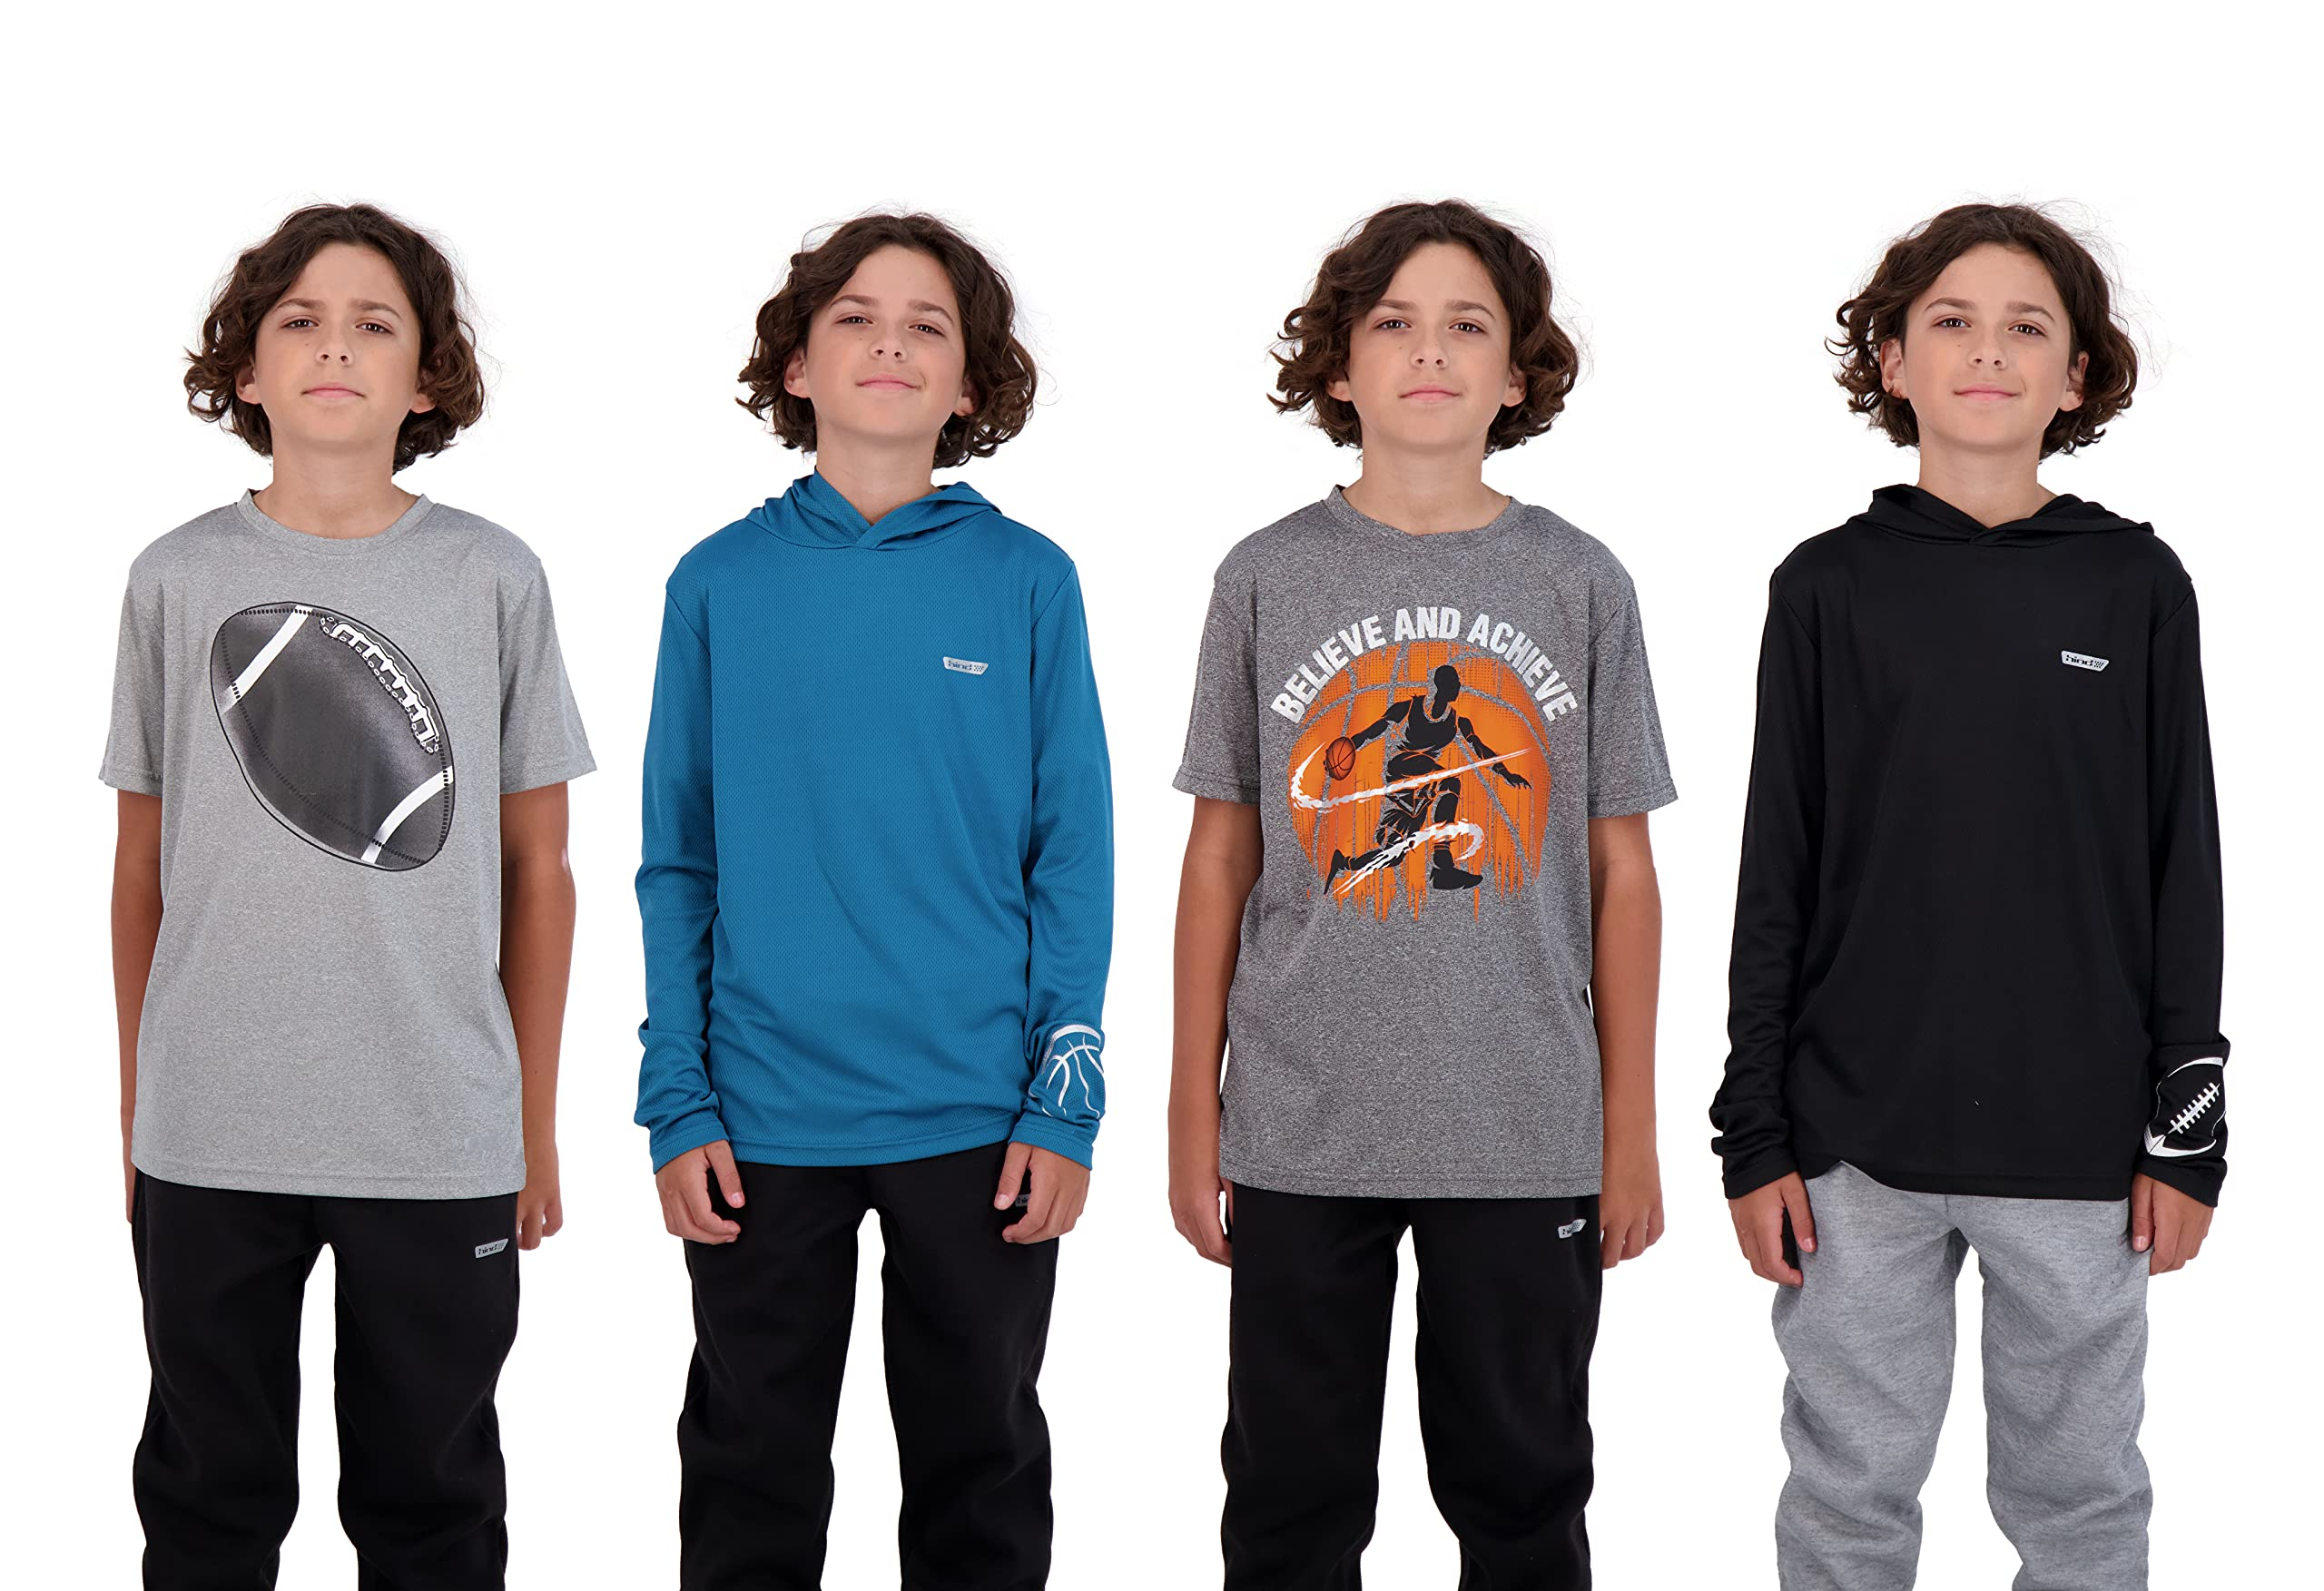 4-Pack Boys Youth Quick-Dry Breathable Performance Active Athletic T Shirts